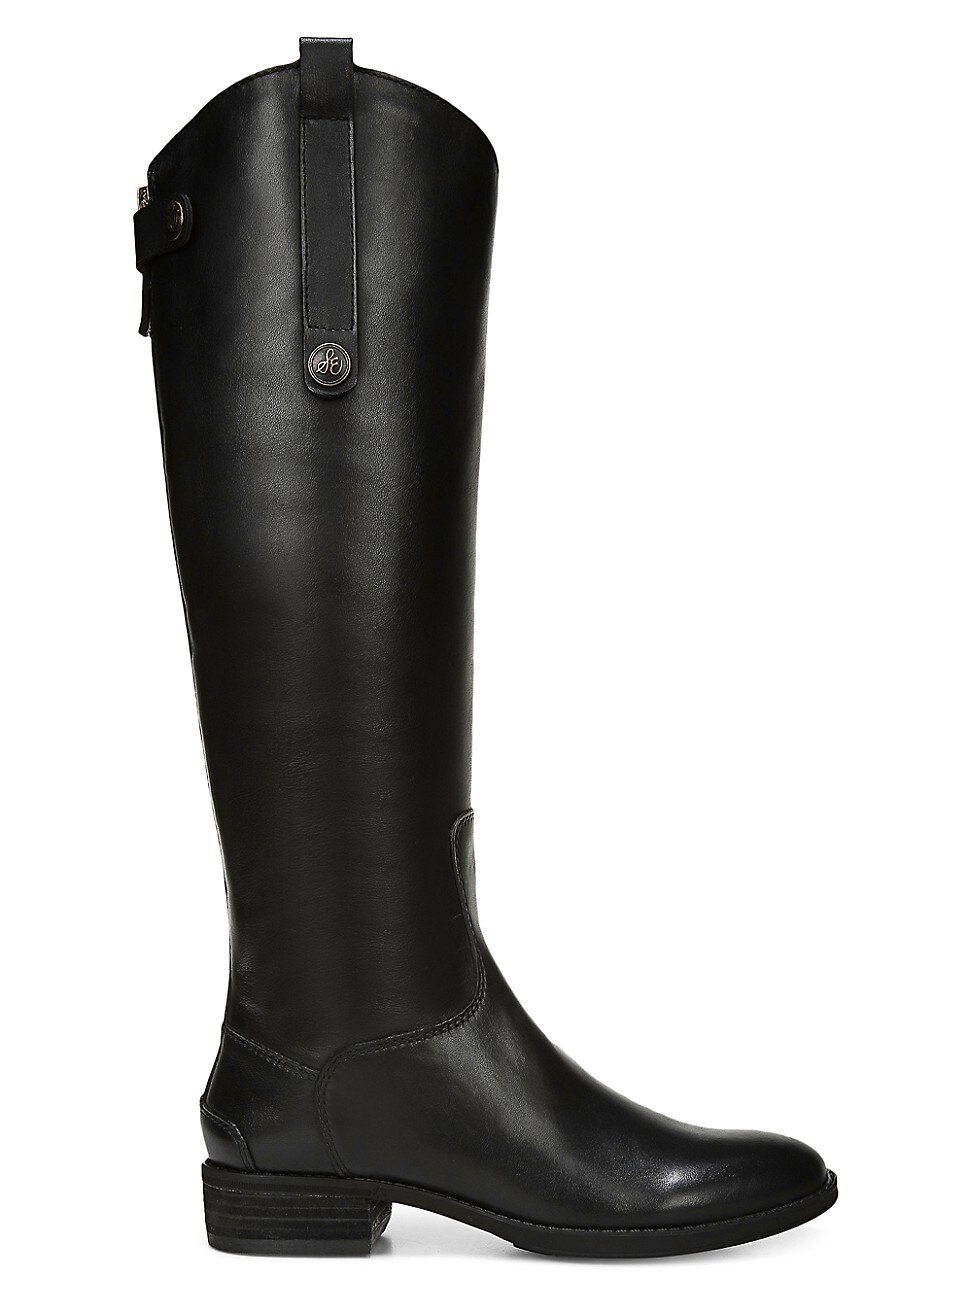 Sam Edelman WOMEN'S PENNY LEATHER RIDING BOOTS